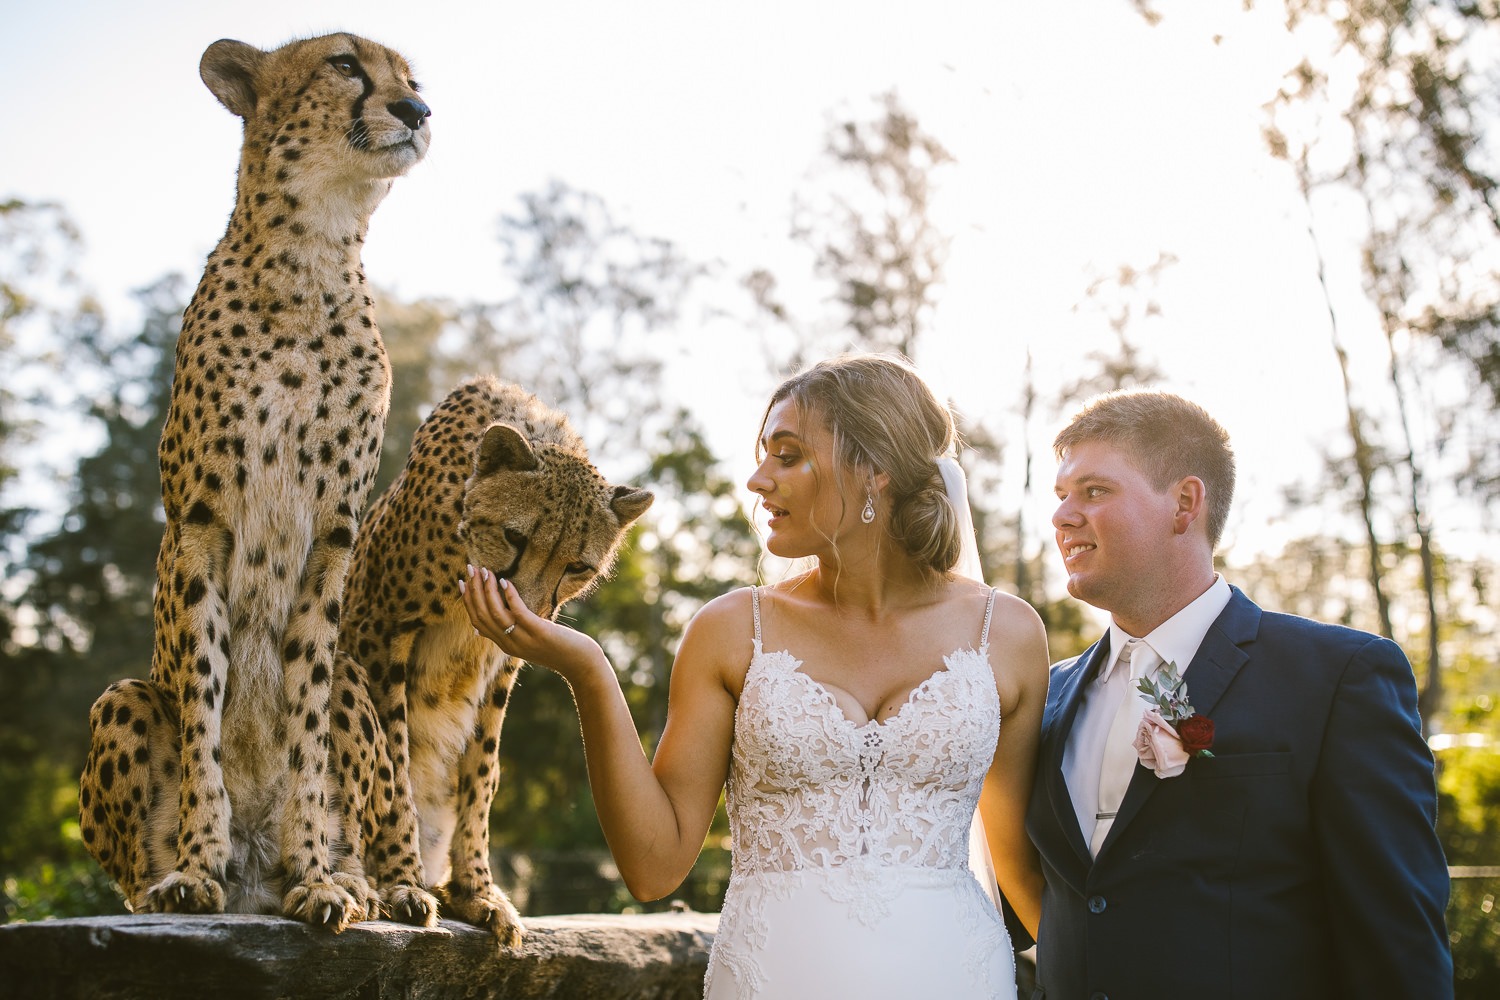 animal wedding photographer, southern highlands wedding photographer, southern highlands photographer, relaxed wedding photographer, country wedding photographer, goulburn wedding photographer, farm wedding photographer, not in your face photographer, sails resort port macquarie wedding photographer, billabong zoo port macquarie wedding photographer, harbour wedding, cheetah wedding photographer, cheetah bride, in with the cheetahs